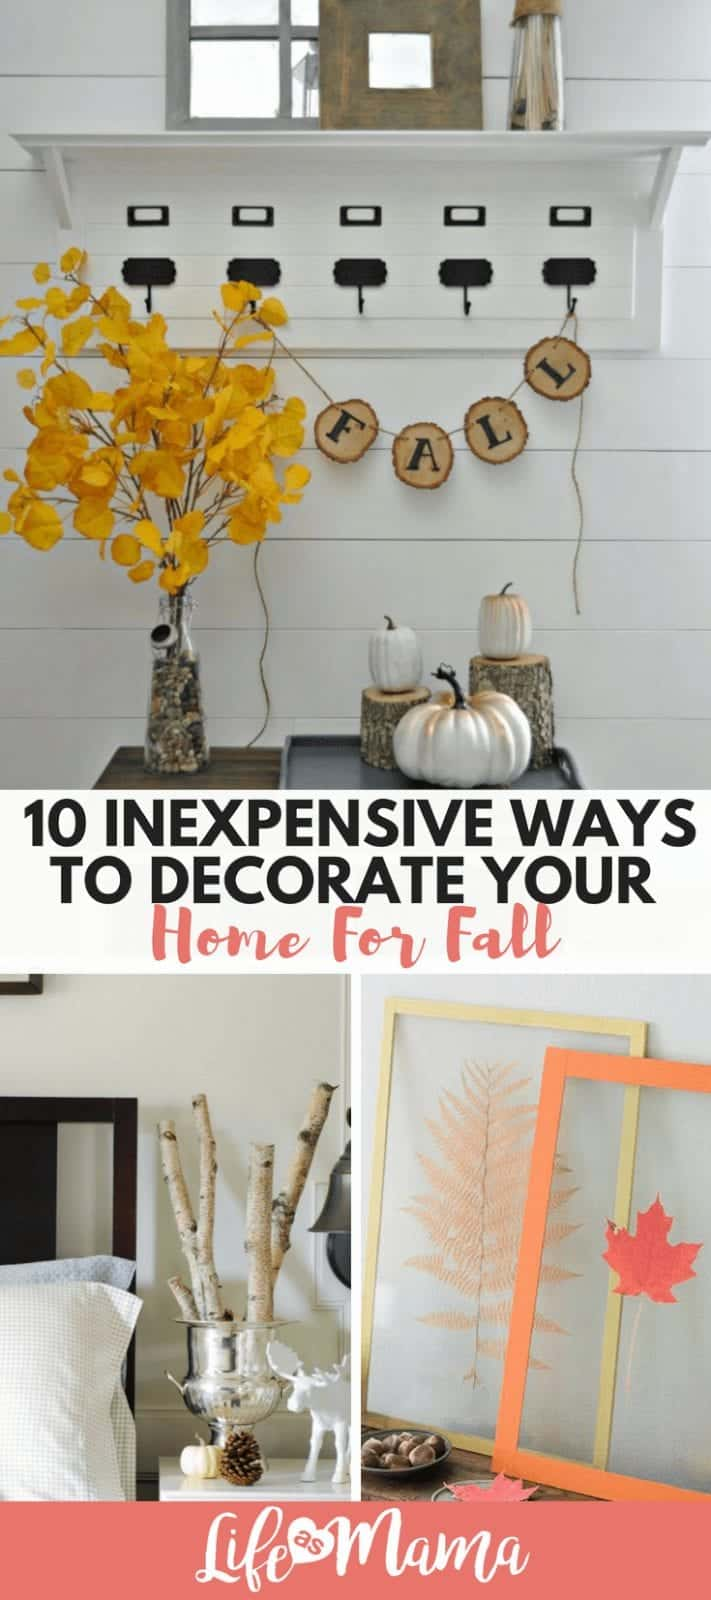 10 Inexpensive Ways To Decorate Your Home For Fall